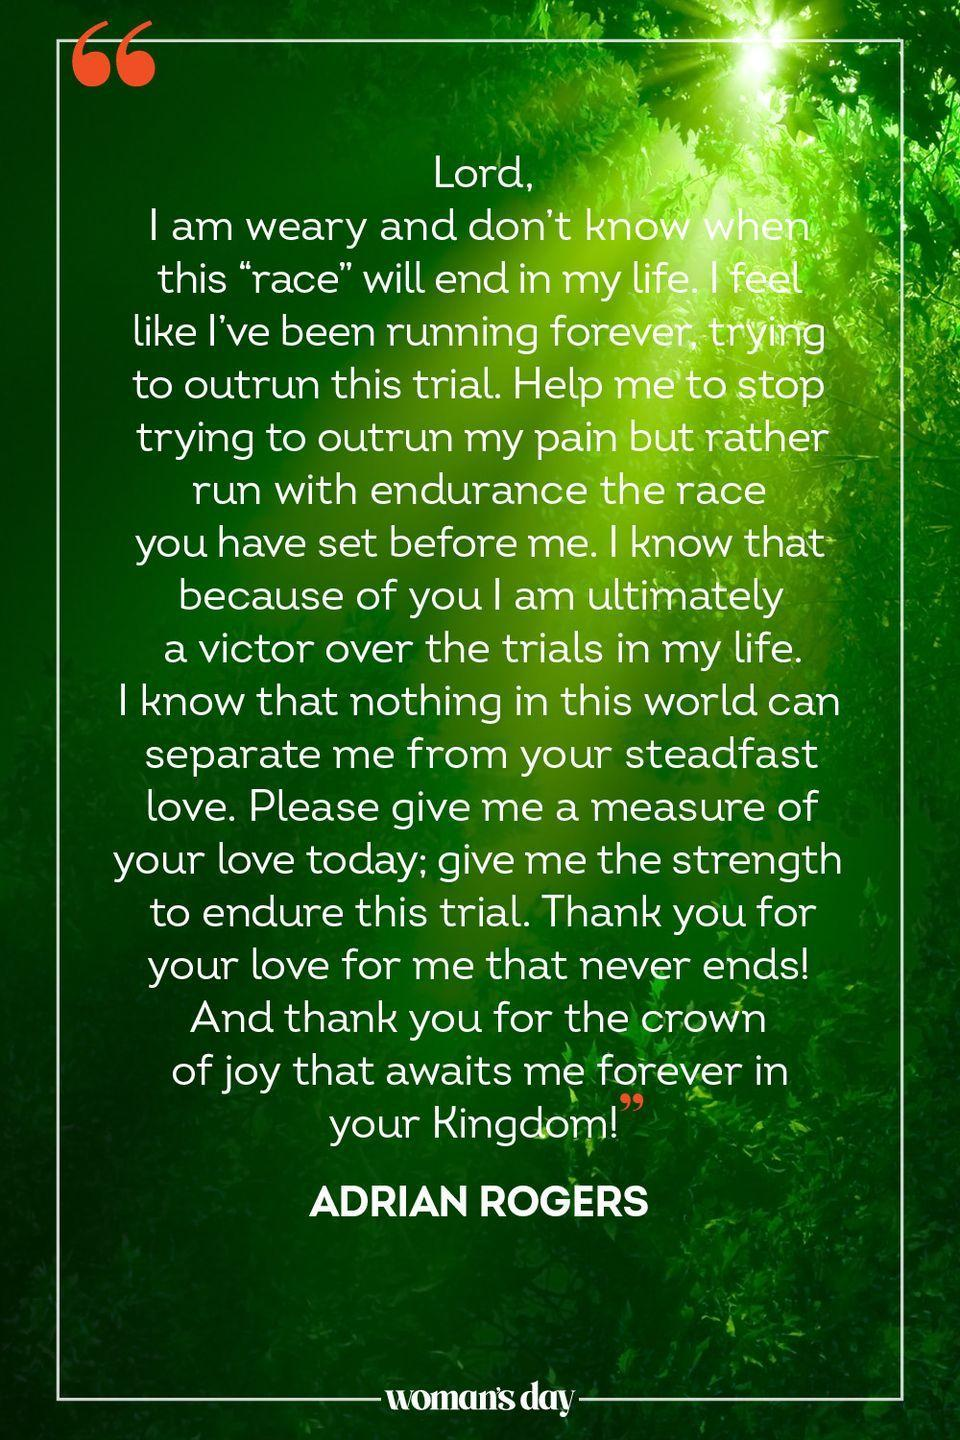 """<p>Lord, </p><p>I am weary and don't know when this """"race"""" will end in my life. I feel like I've been running forever, trying to outrun this trial. Help me to stop trying to outrun my pain but rather run with endurance the race you have set before me. I know that because of you I am ultimately a victor over the trials in my life. I know that nothing in this world can separate me from your steadfast love. </p><p>Please give me a measure of your love today; give me the strength to endure this trial. Thank you for your love for me that never ends! And thank you for the crown of joy that awaits me forever in your Kingdom!</p><p>— <a href=""""https://www.christianity.com/devotionals/your-daily-prayer/a-prayer-for-strength-to-endure-your-daily-prayer-september-20-2016.html"""" rel=""""nofollow noopener"""" target=""""_blank"""" data-ylk=""""slk:Adrian Rogers"""" class=""""link rapid-noclick-resp"""">Adrian Rogers</a></p>"""